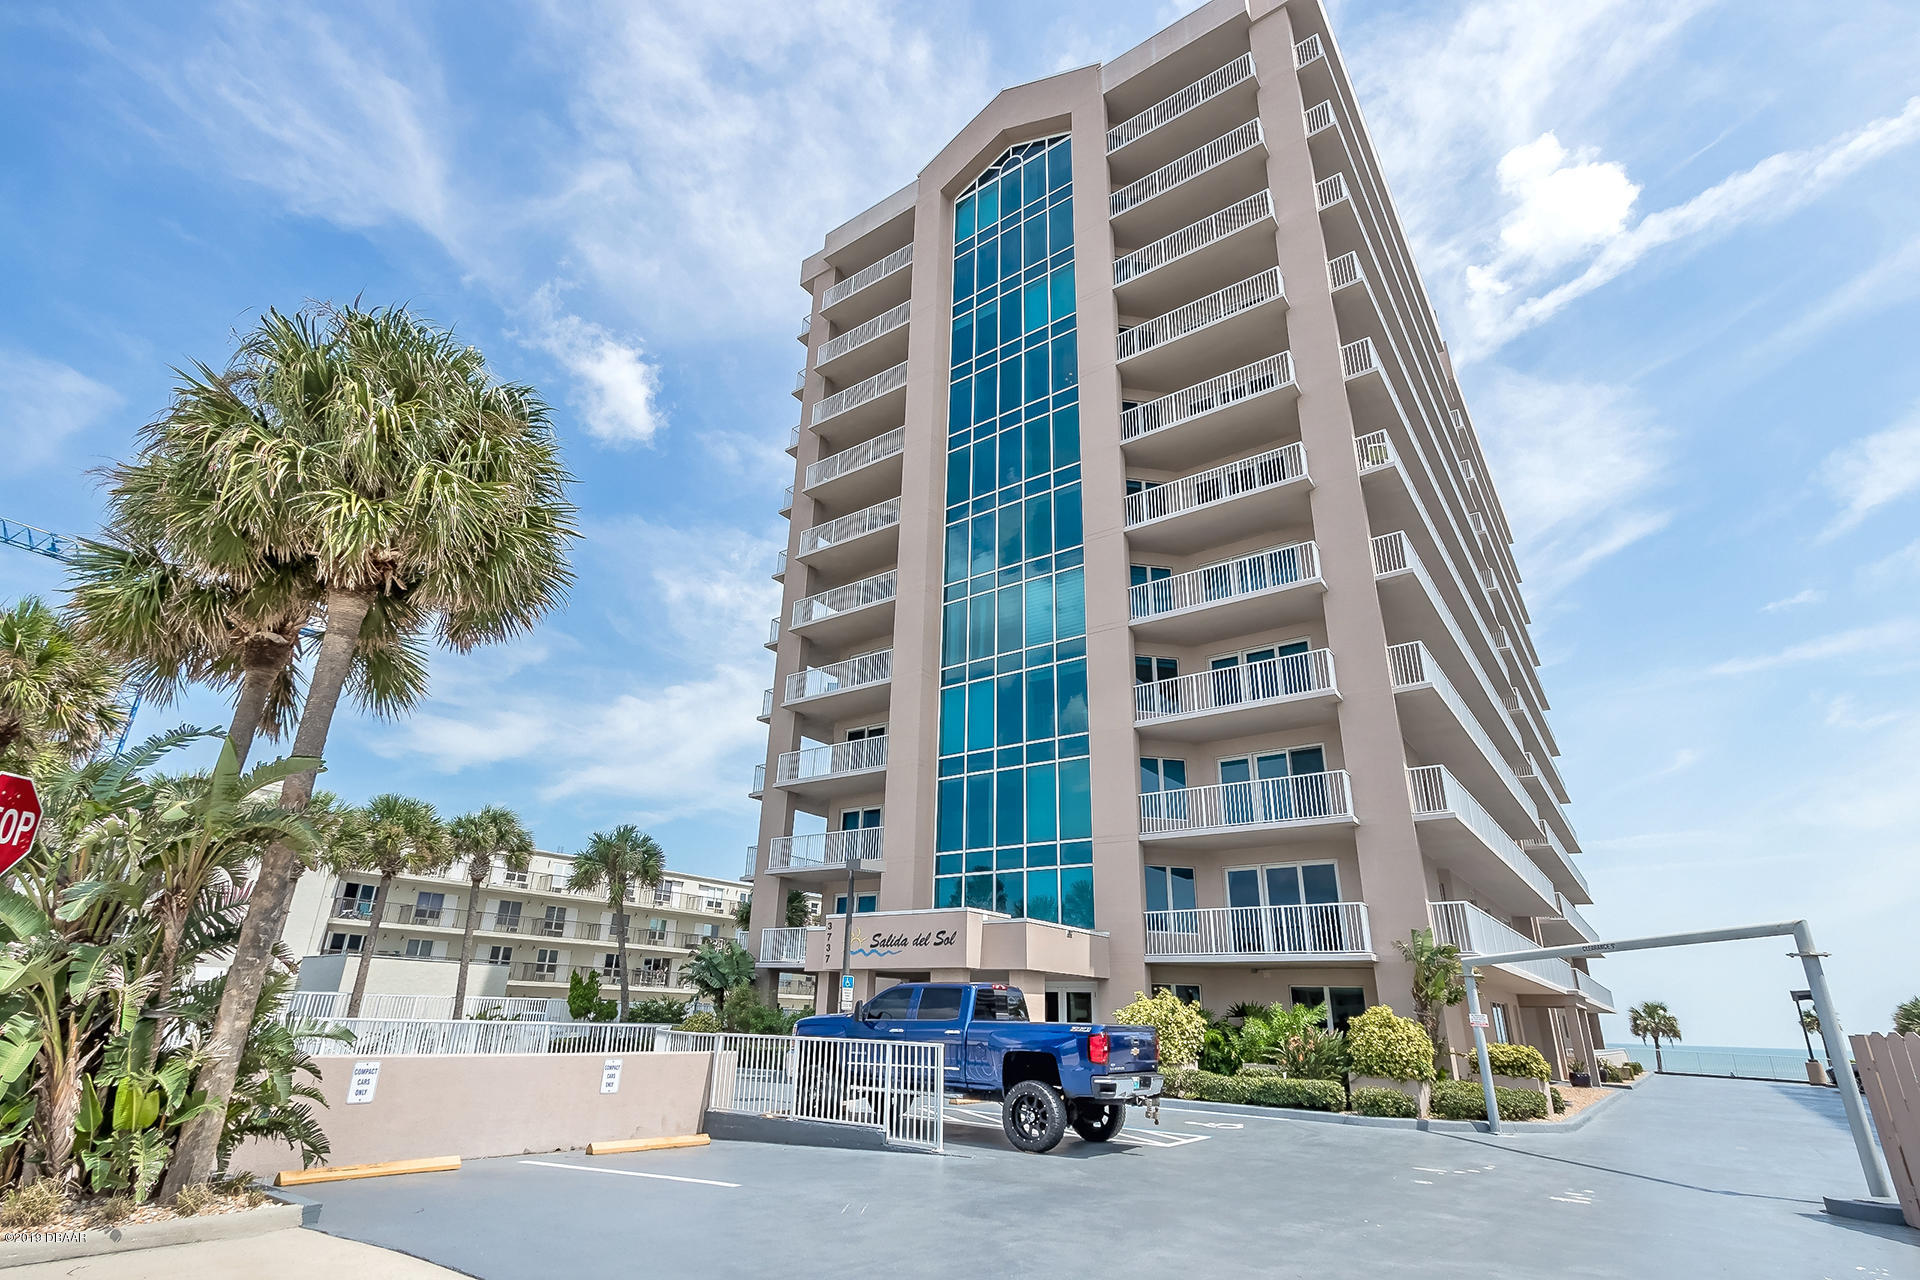 Photo of 3737 S Atlantic Avenue #804, Daytona Beach Shores, FL 32118